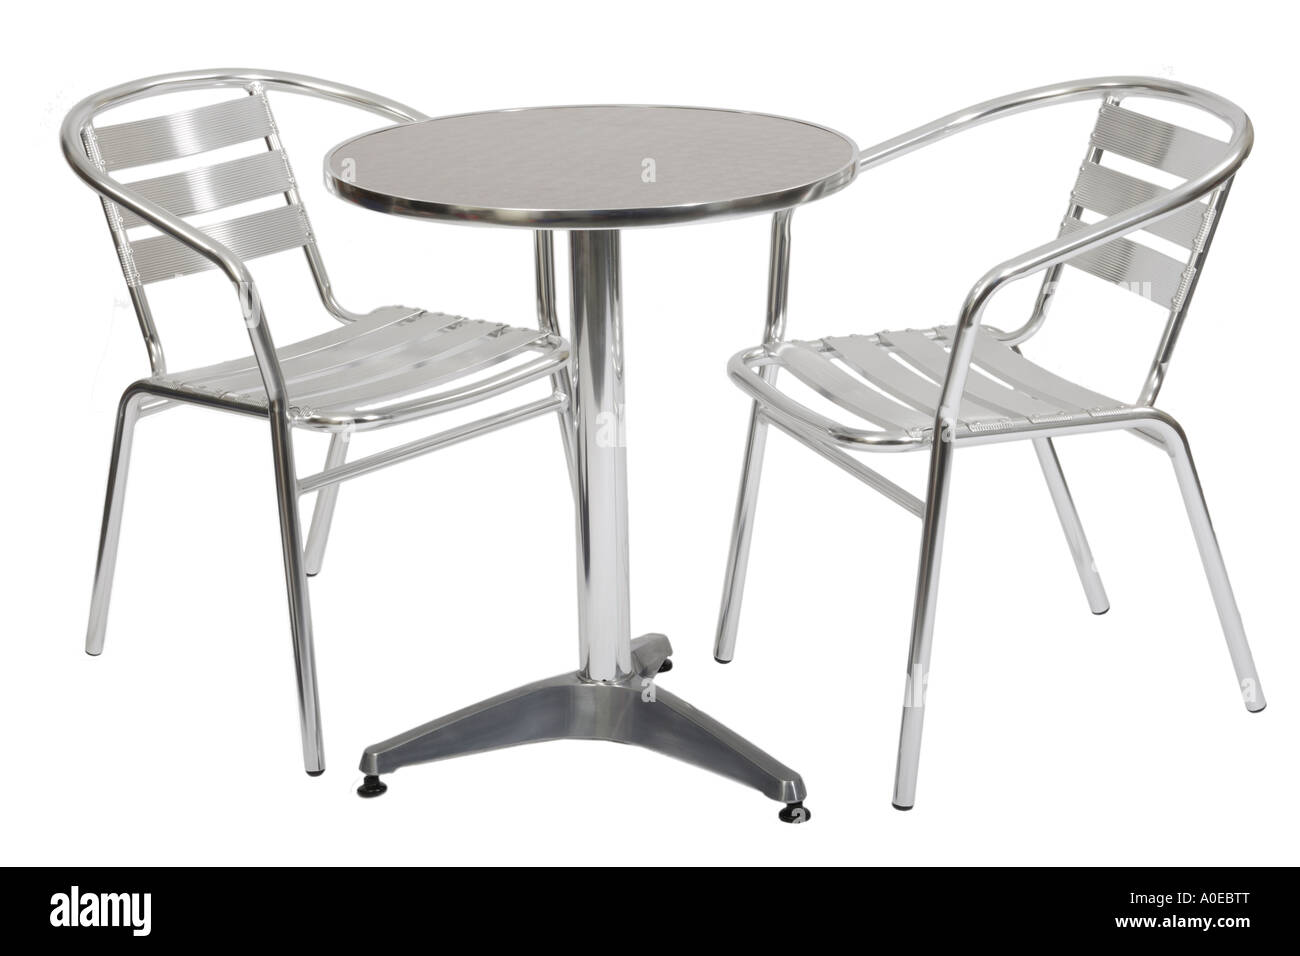 Outdoor cafe chairs - Outdoor Metal Cafe Table And Two Chairs